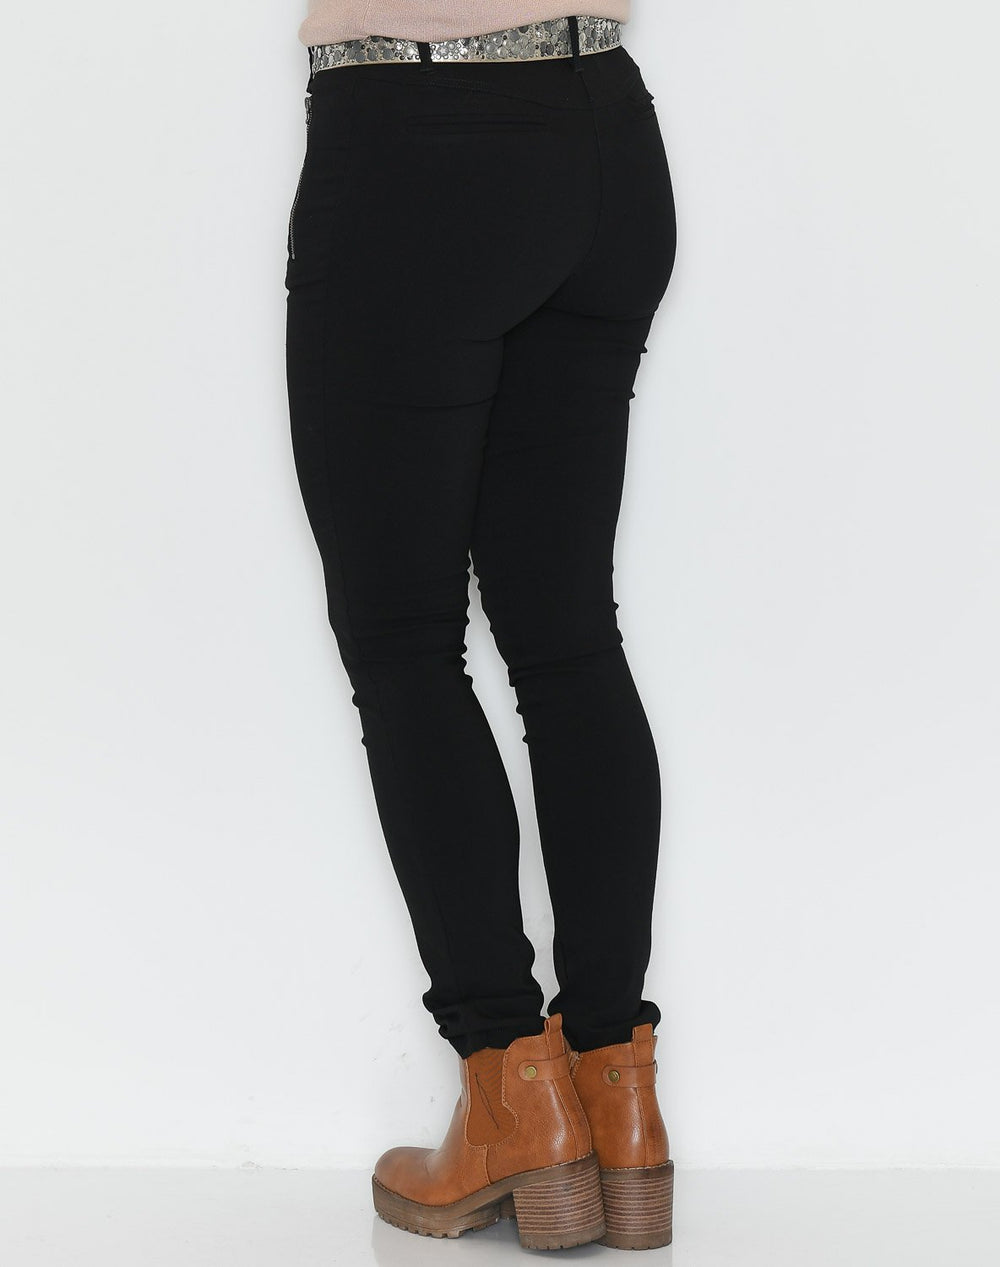 Soya Lilly 35 pants black - Online-Mode